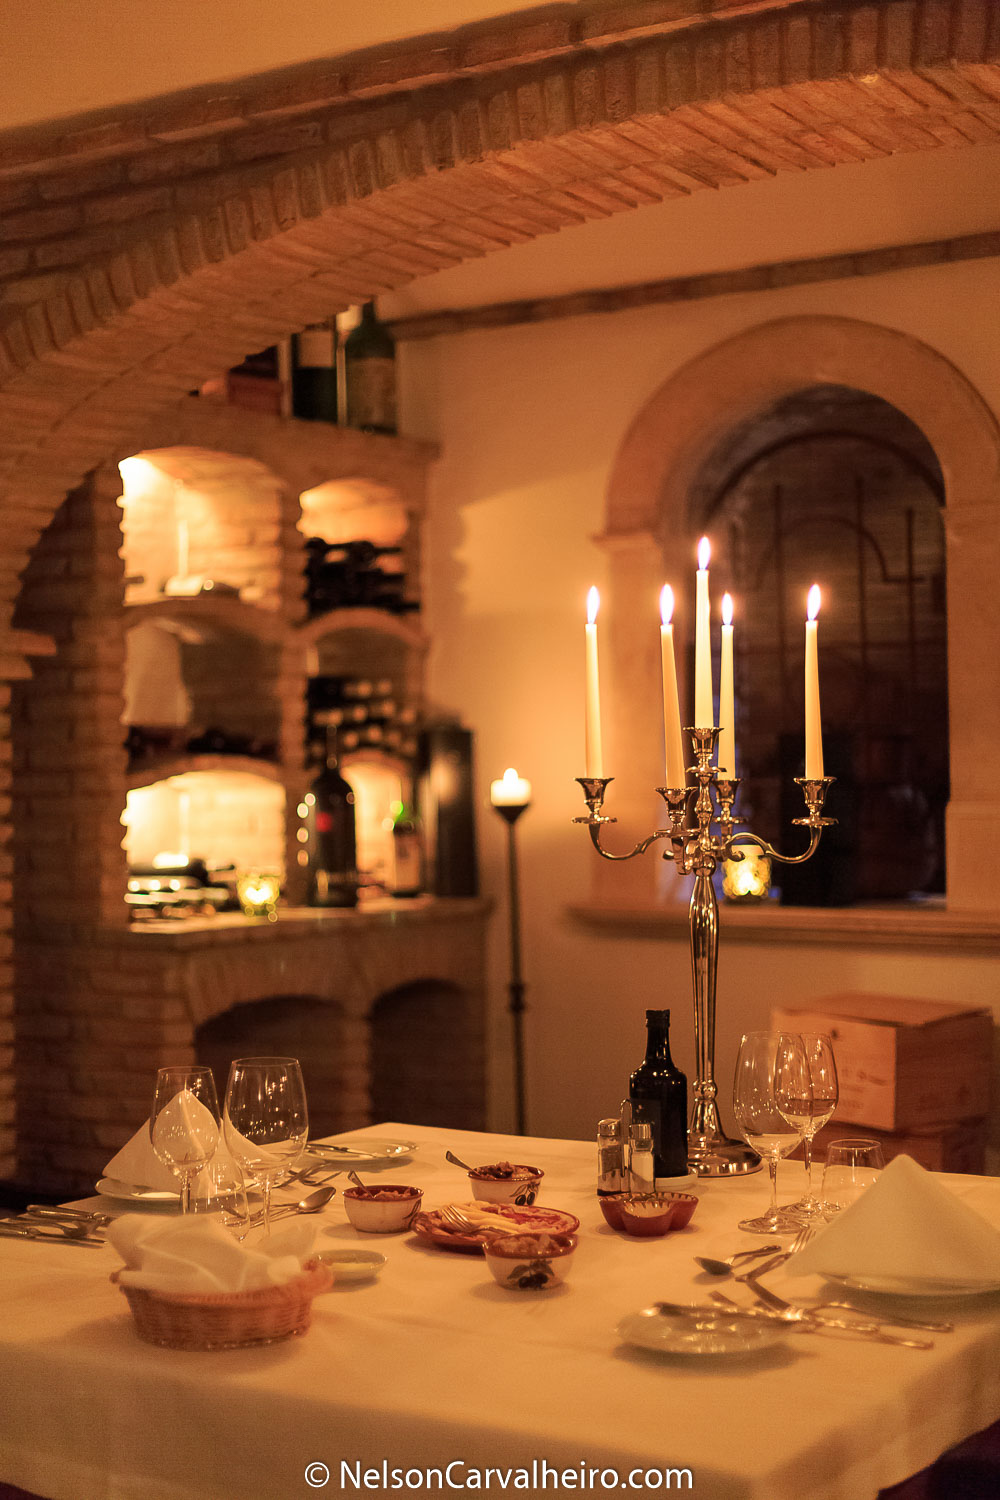 Alentejo Wine Travel Guide - Herdade dos Grous - Dinner at the Wine Cellar